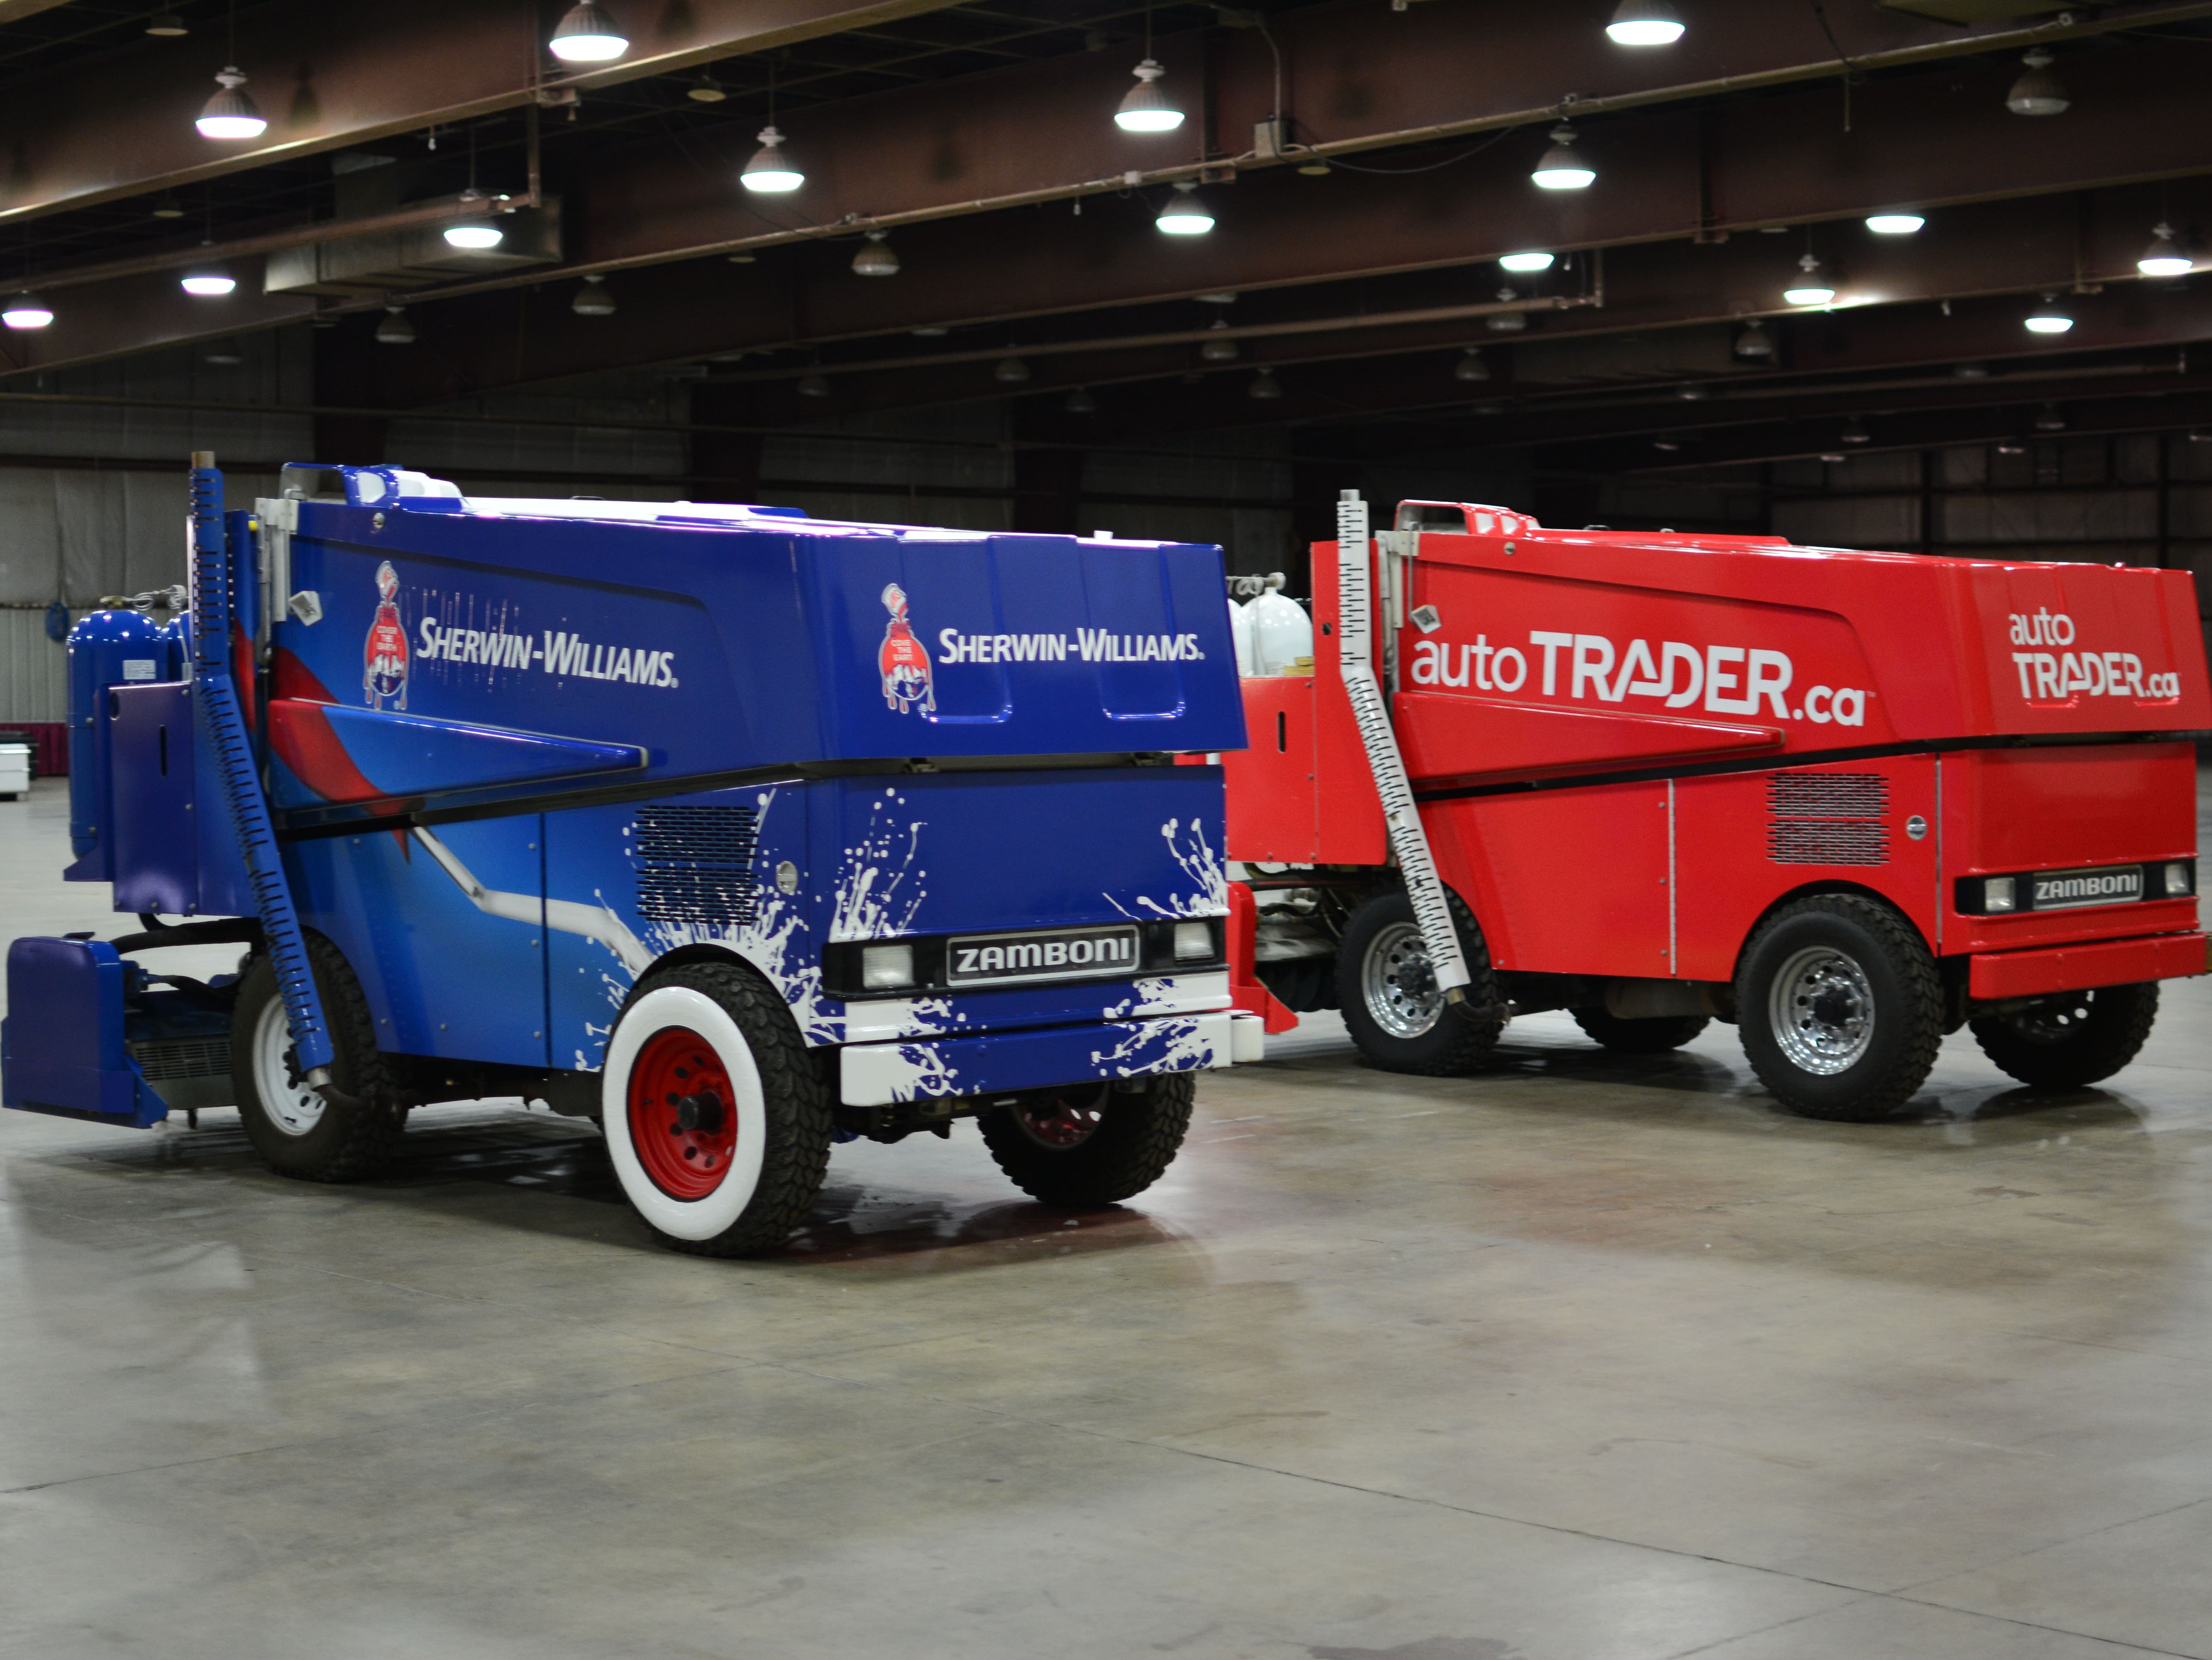 2 Zambonis with complete wraps.